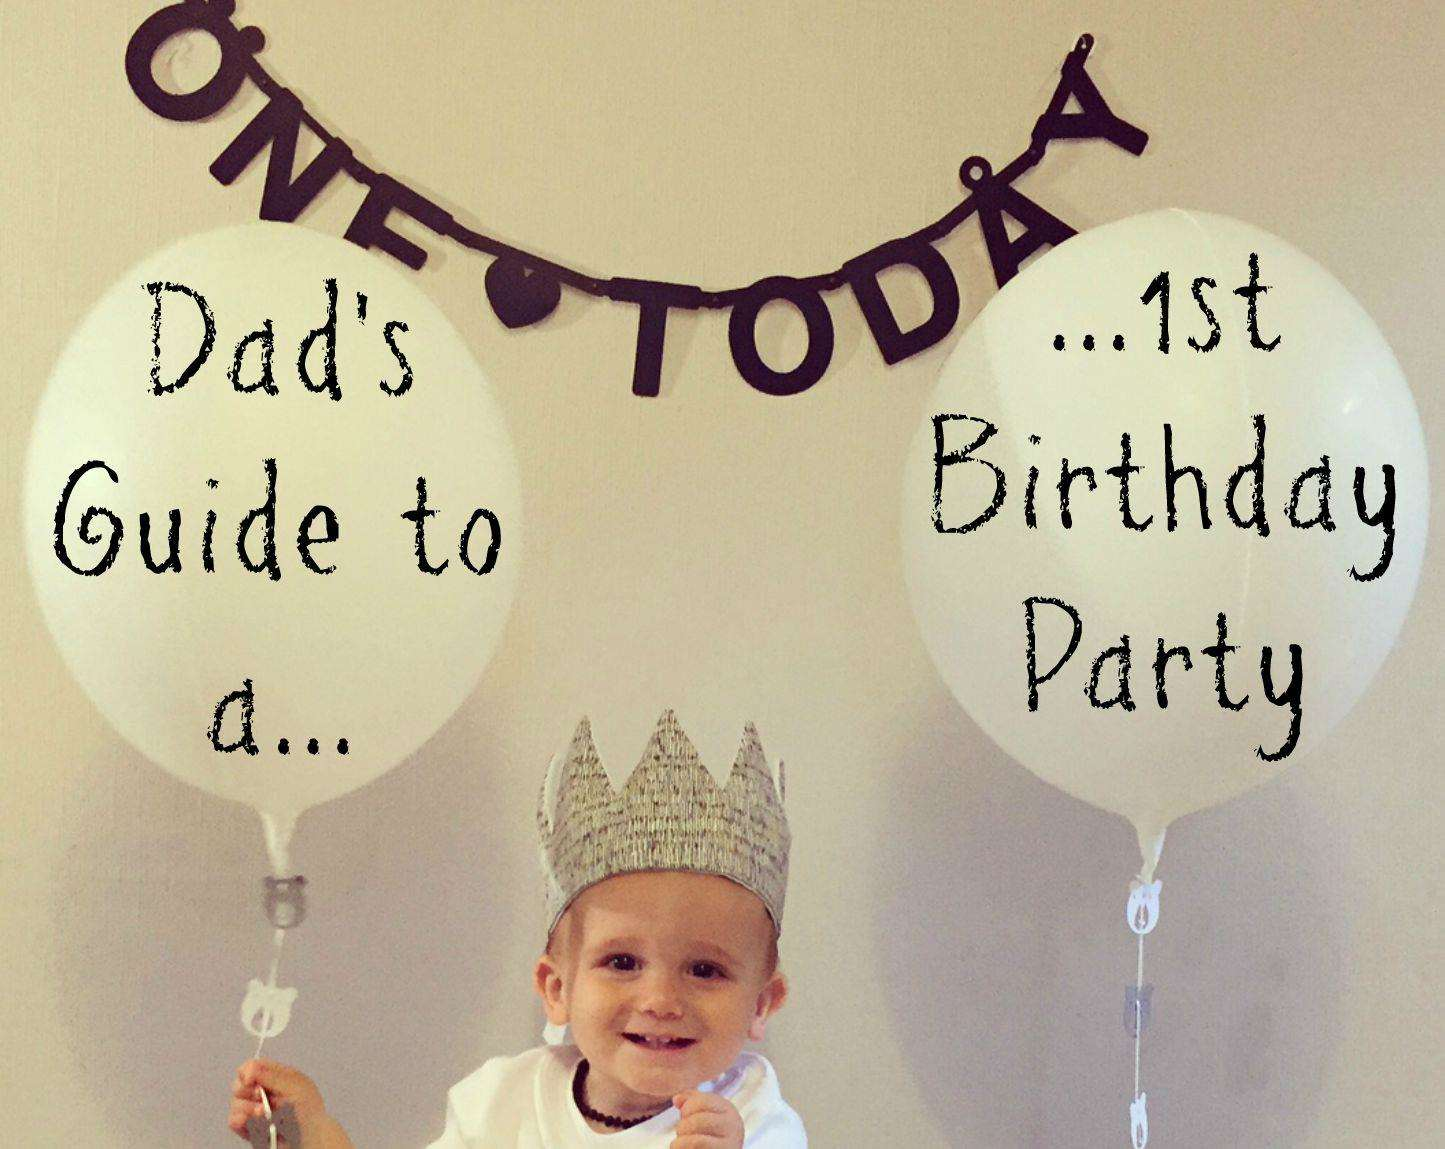 A Dad's Guide to a First Birthday Party, 1st Birthday Party Ideas PT%, new-dad%